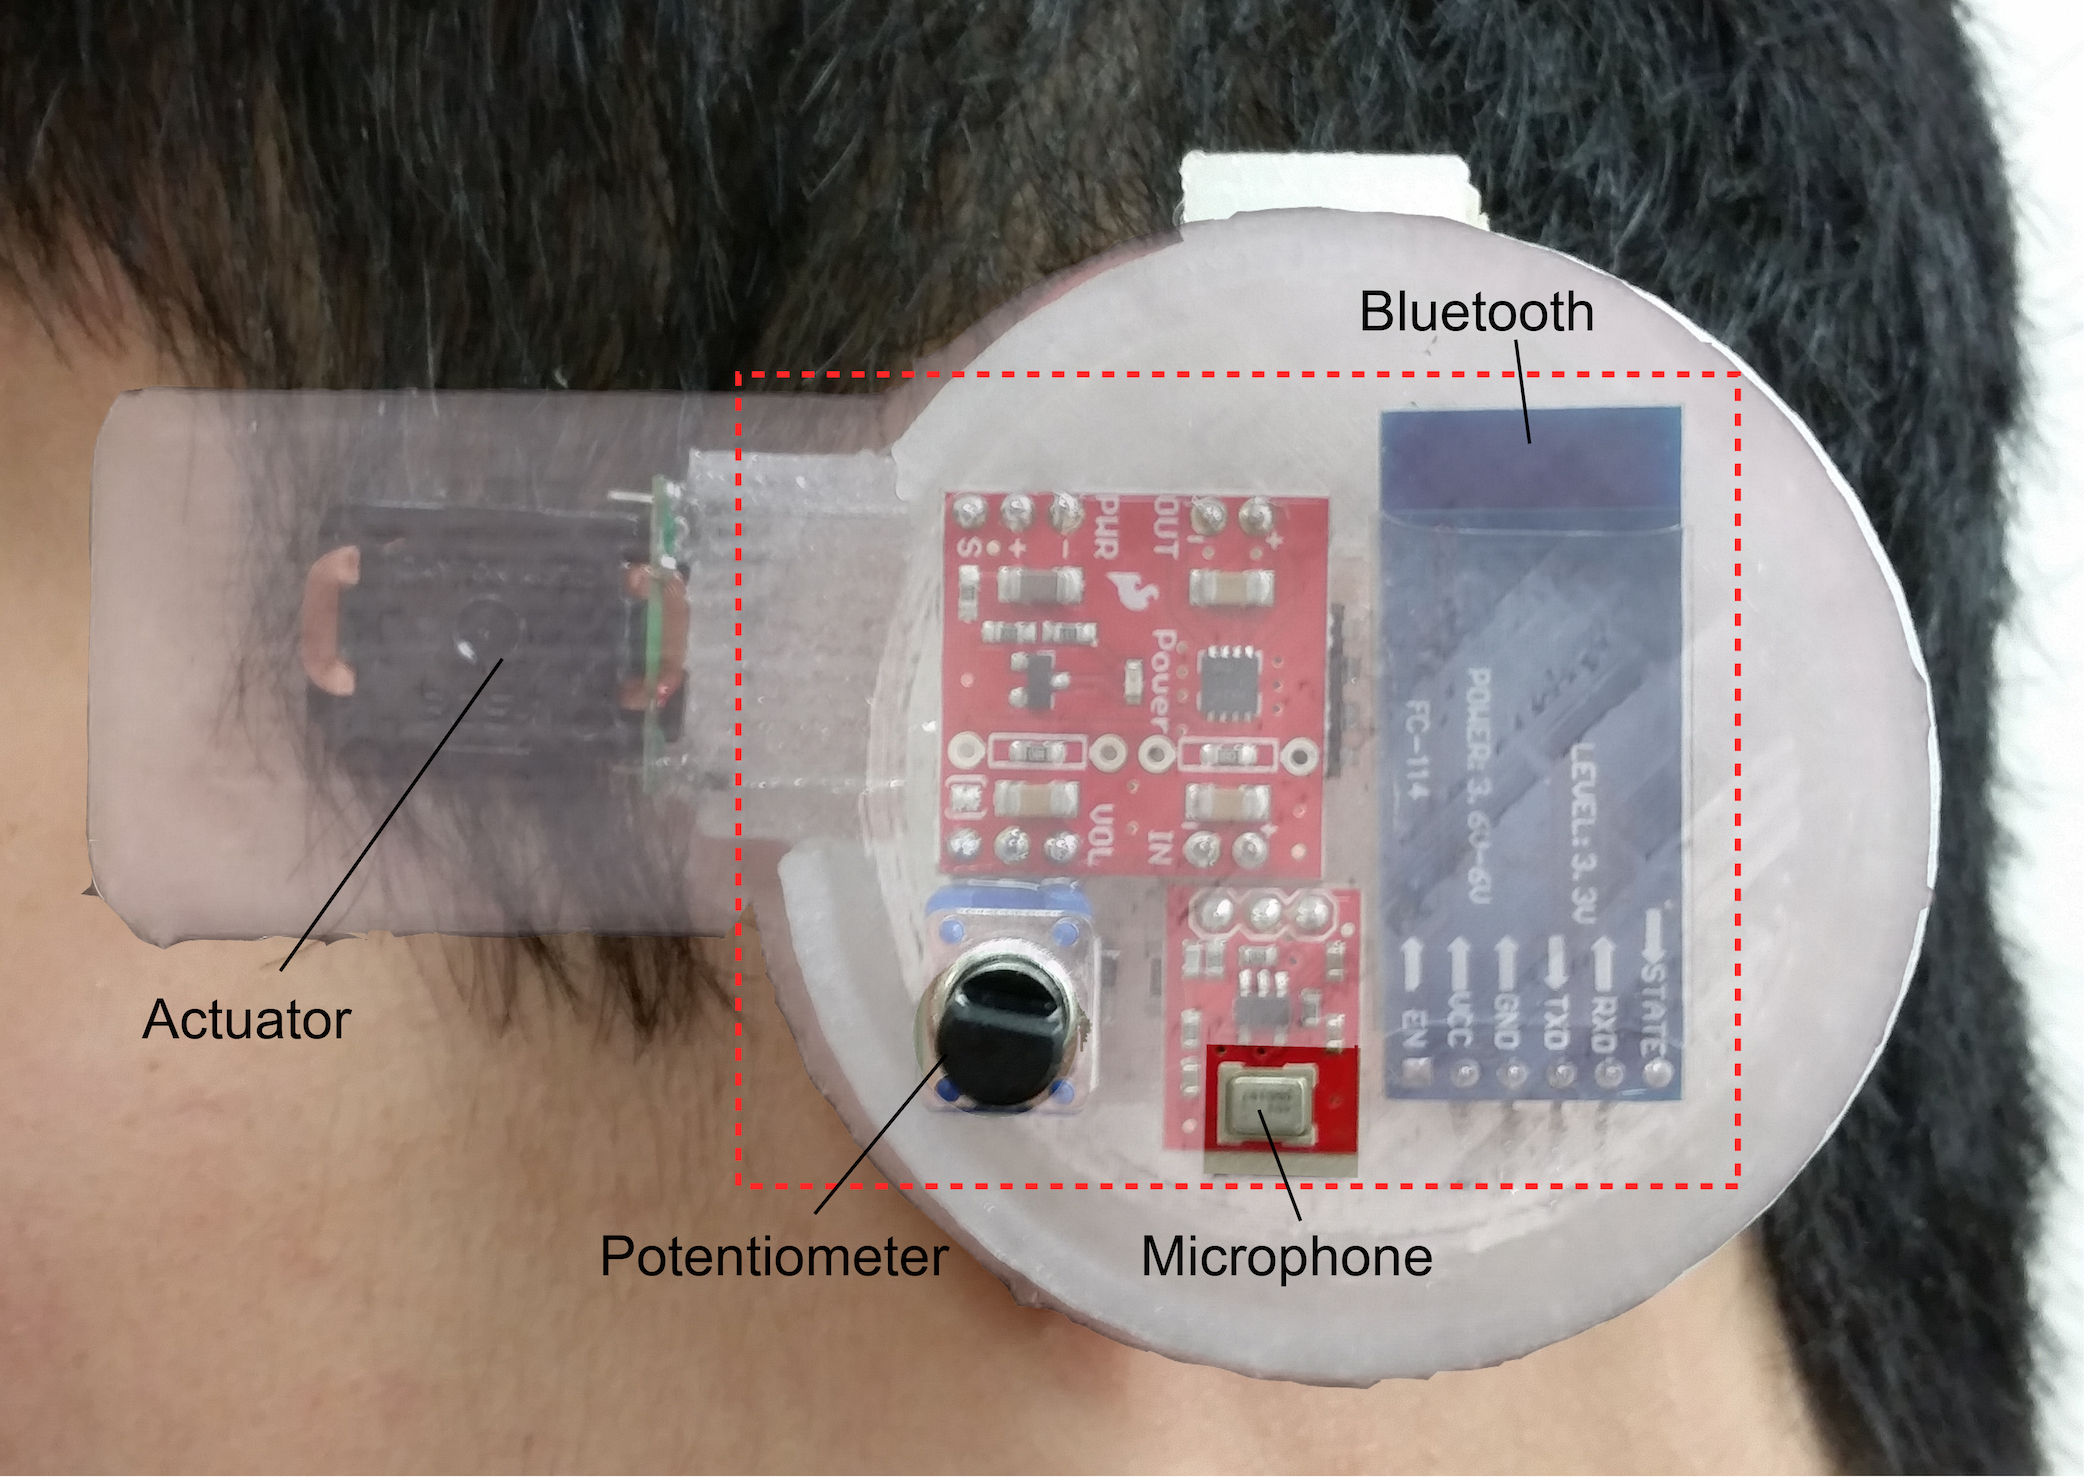 Researchers have now developed a 3D printed tracker that is worn on the ear to detect core body temperature.